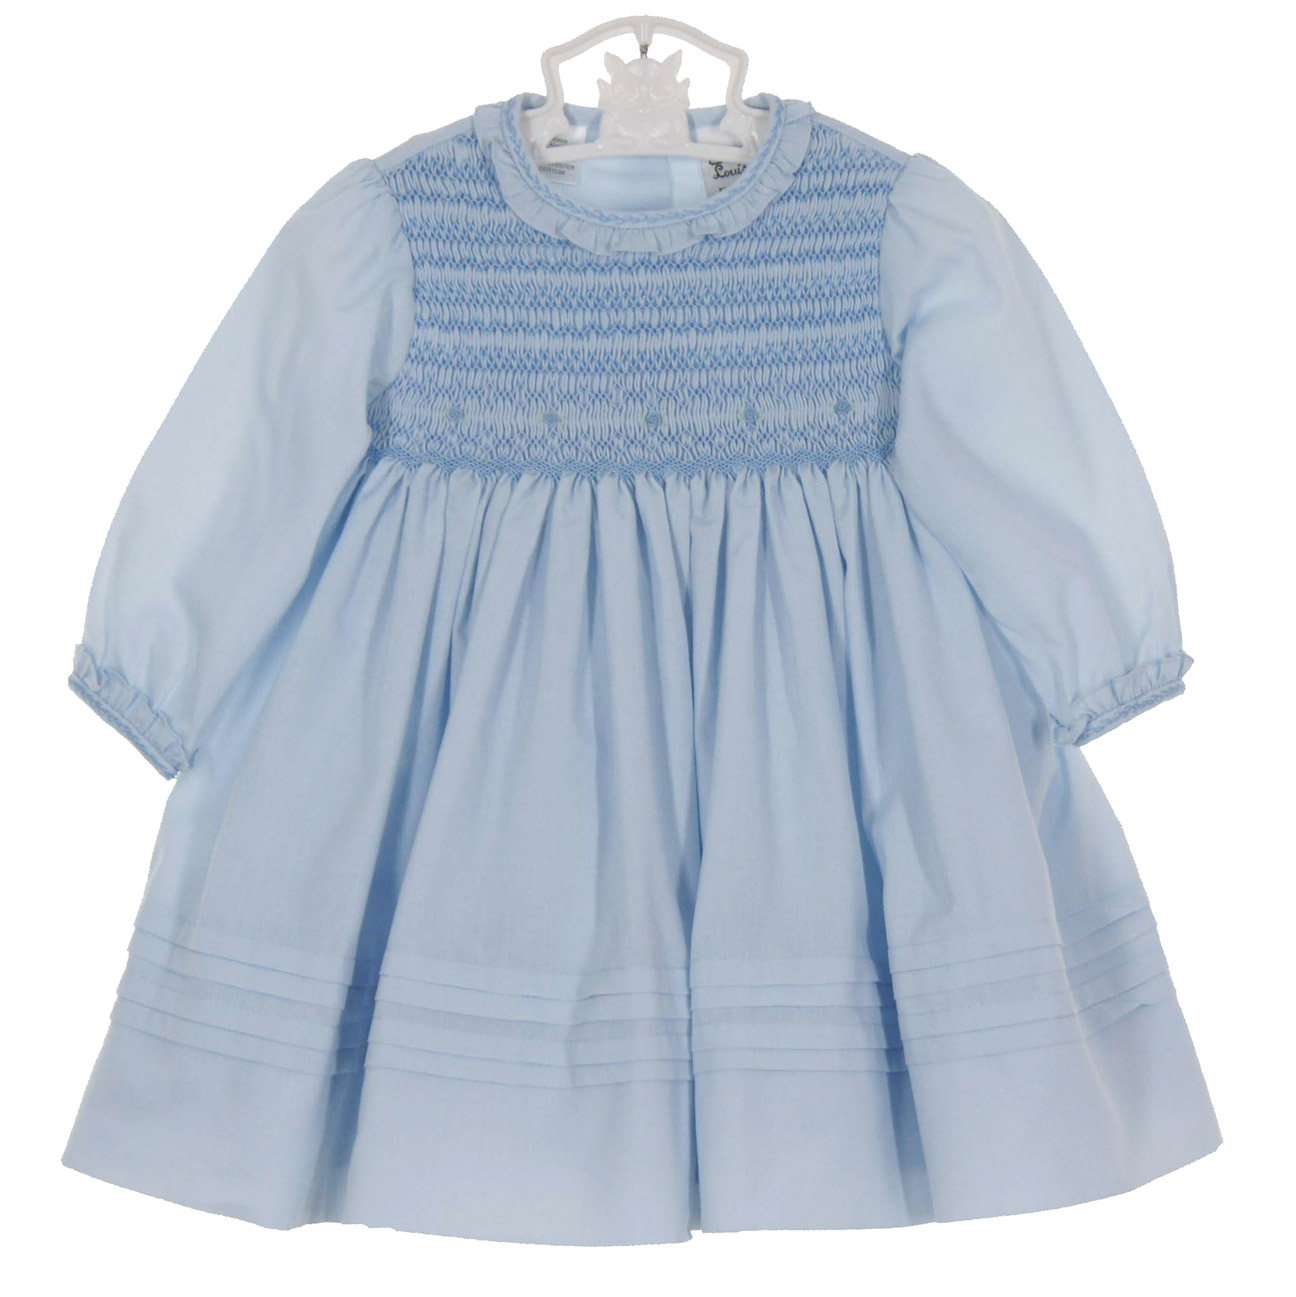 Sarah Louise Blue Smocked Dress With Ruffled Collar